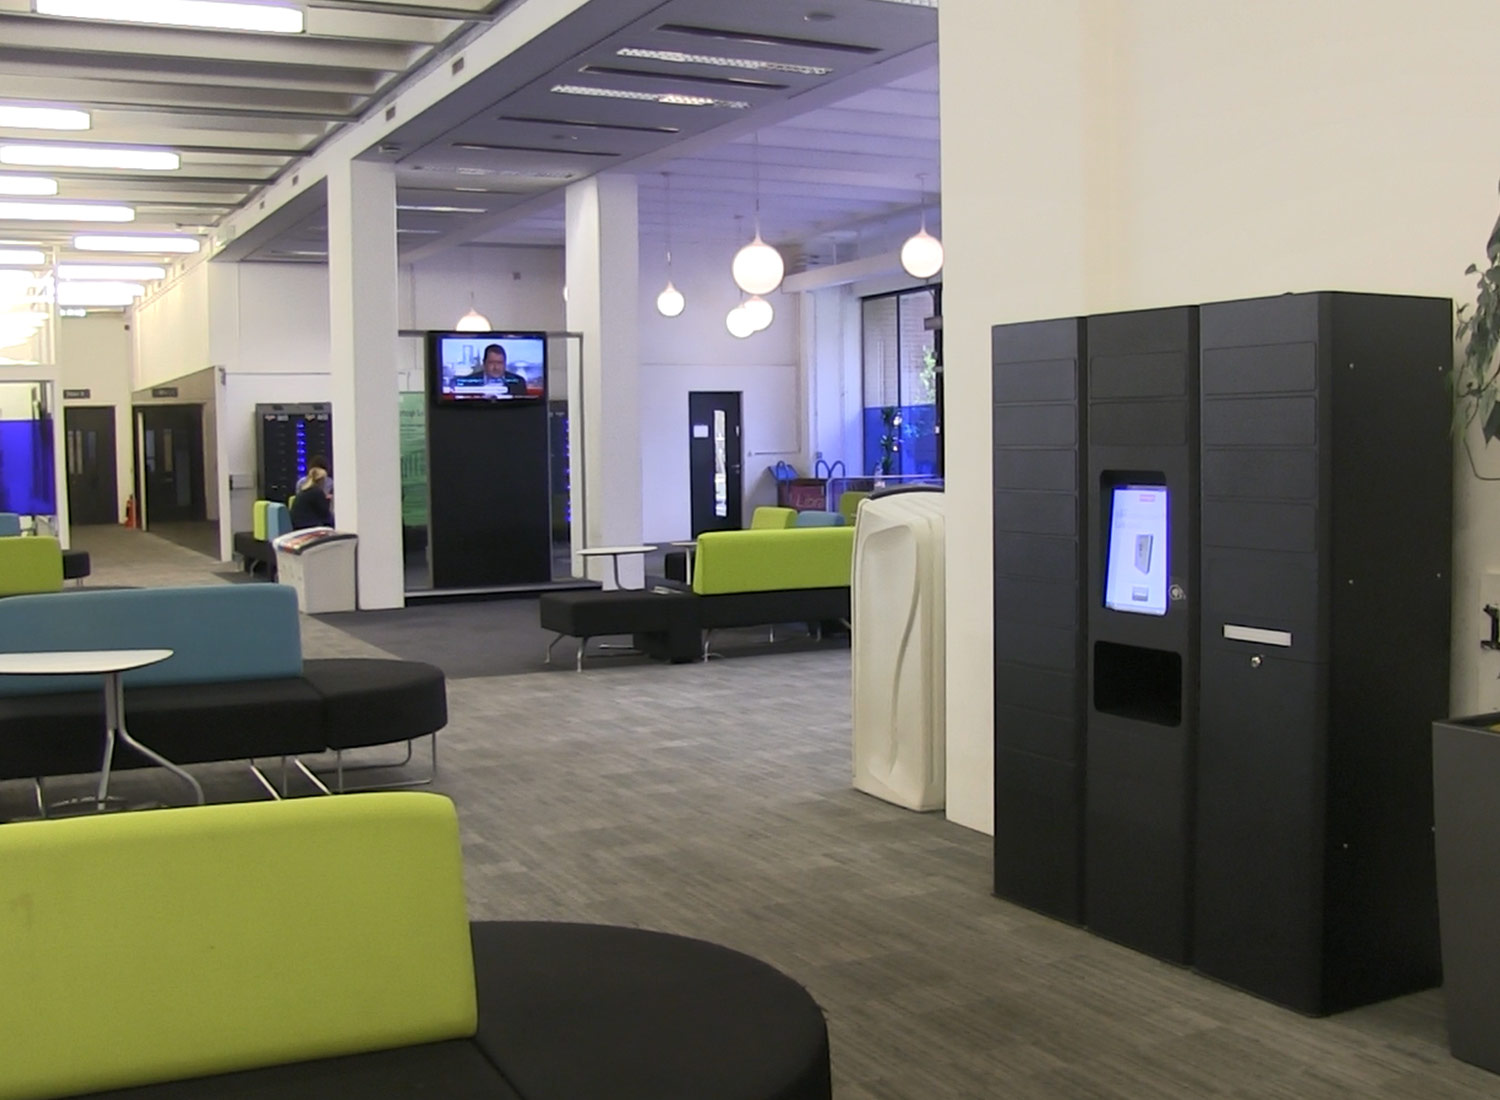 remotelocker in the University of Manchester library